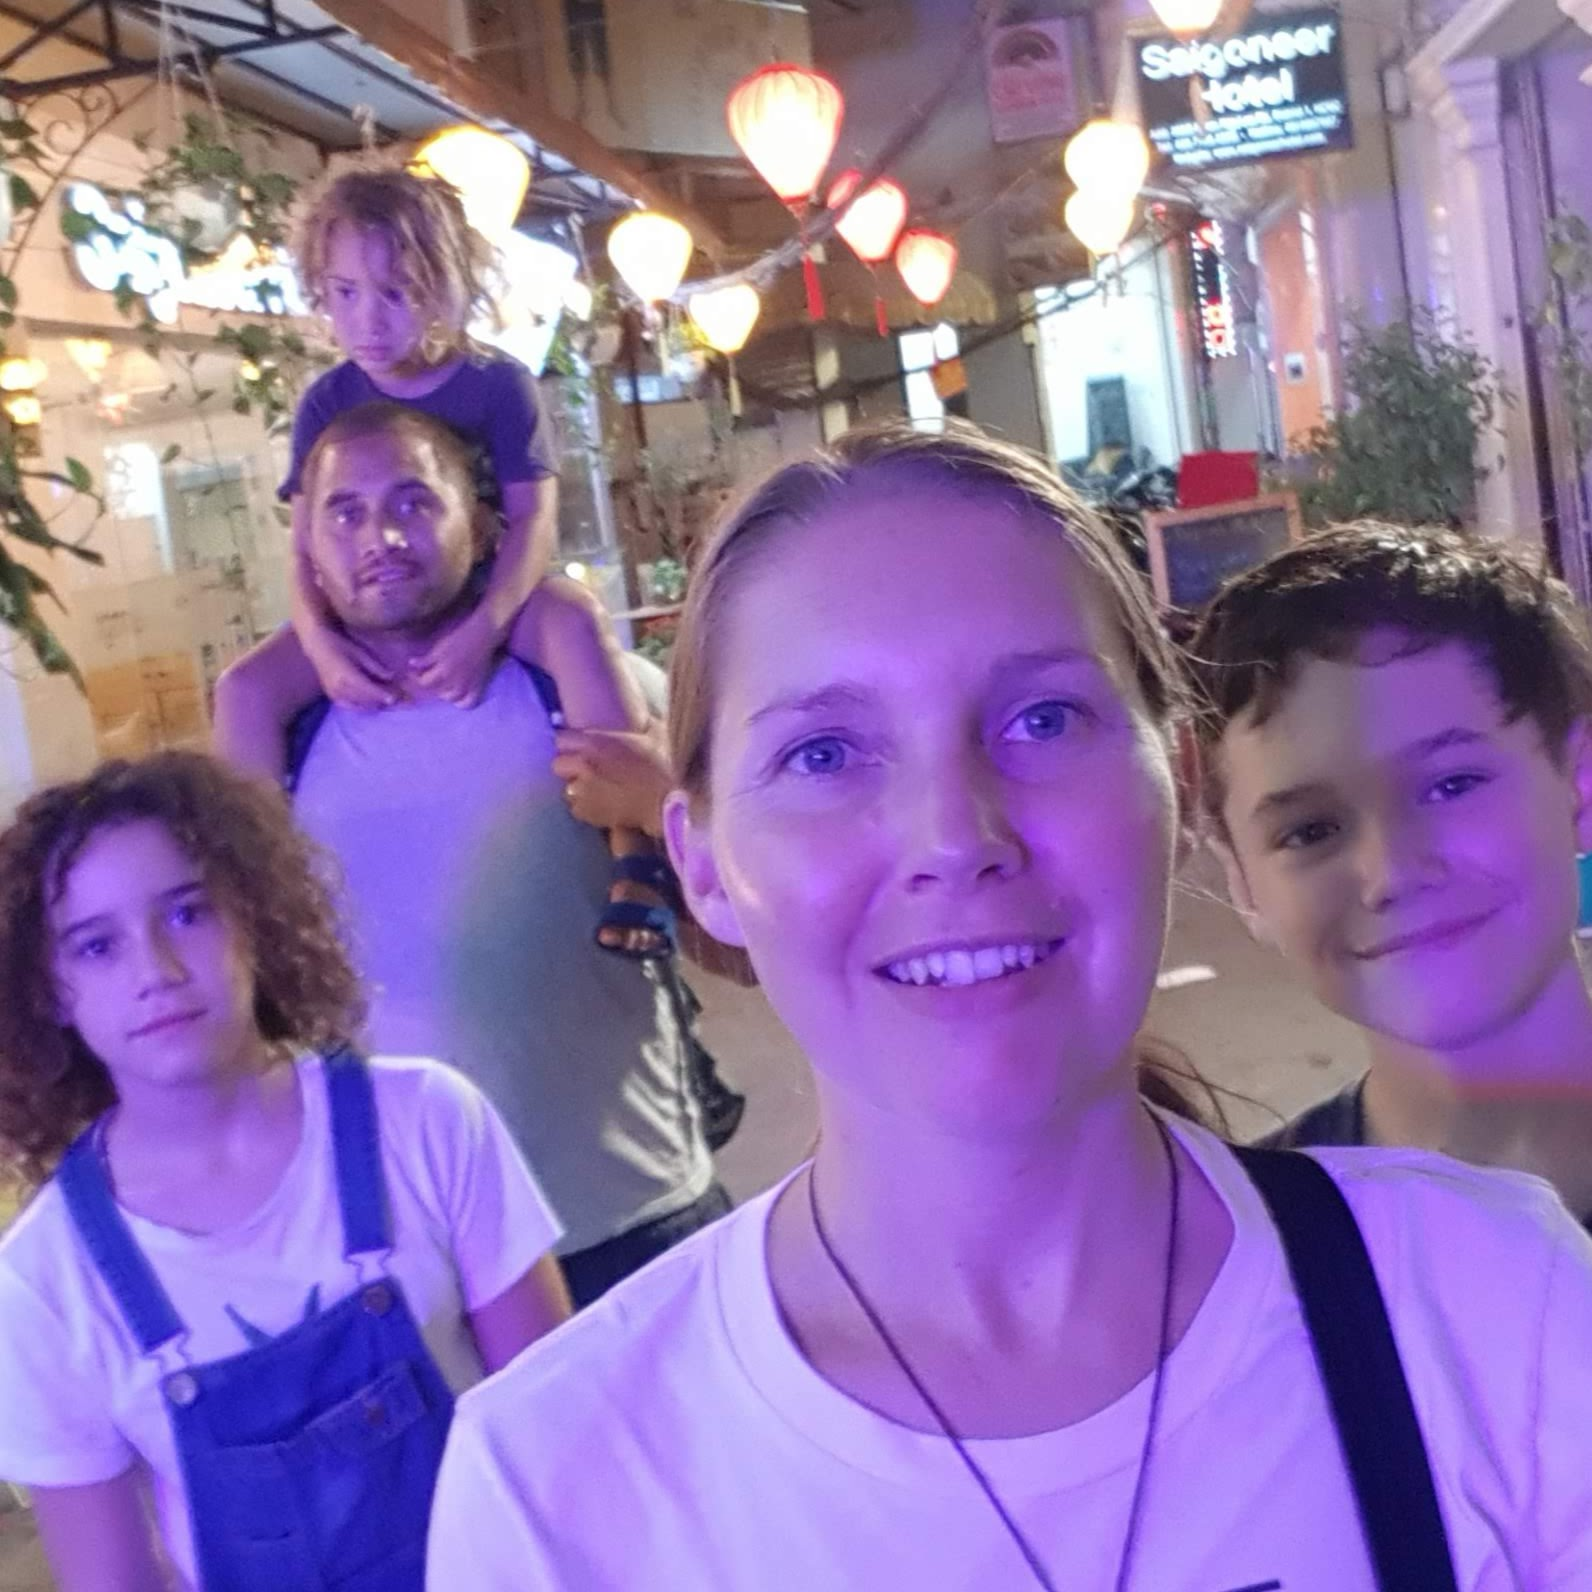 World Travel Ambitions - Family Life Outside the Box - Saigon, Vietnam - March 2020